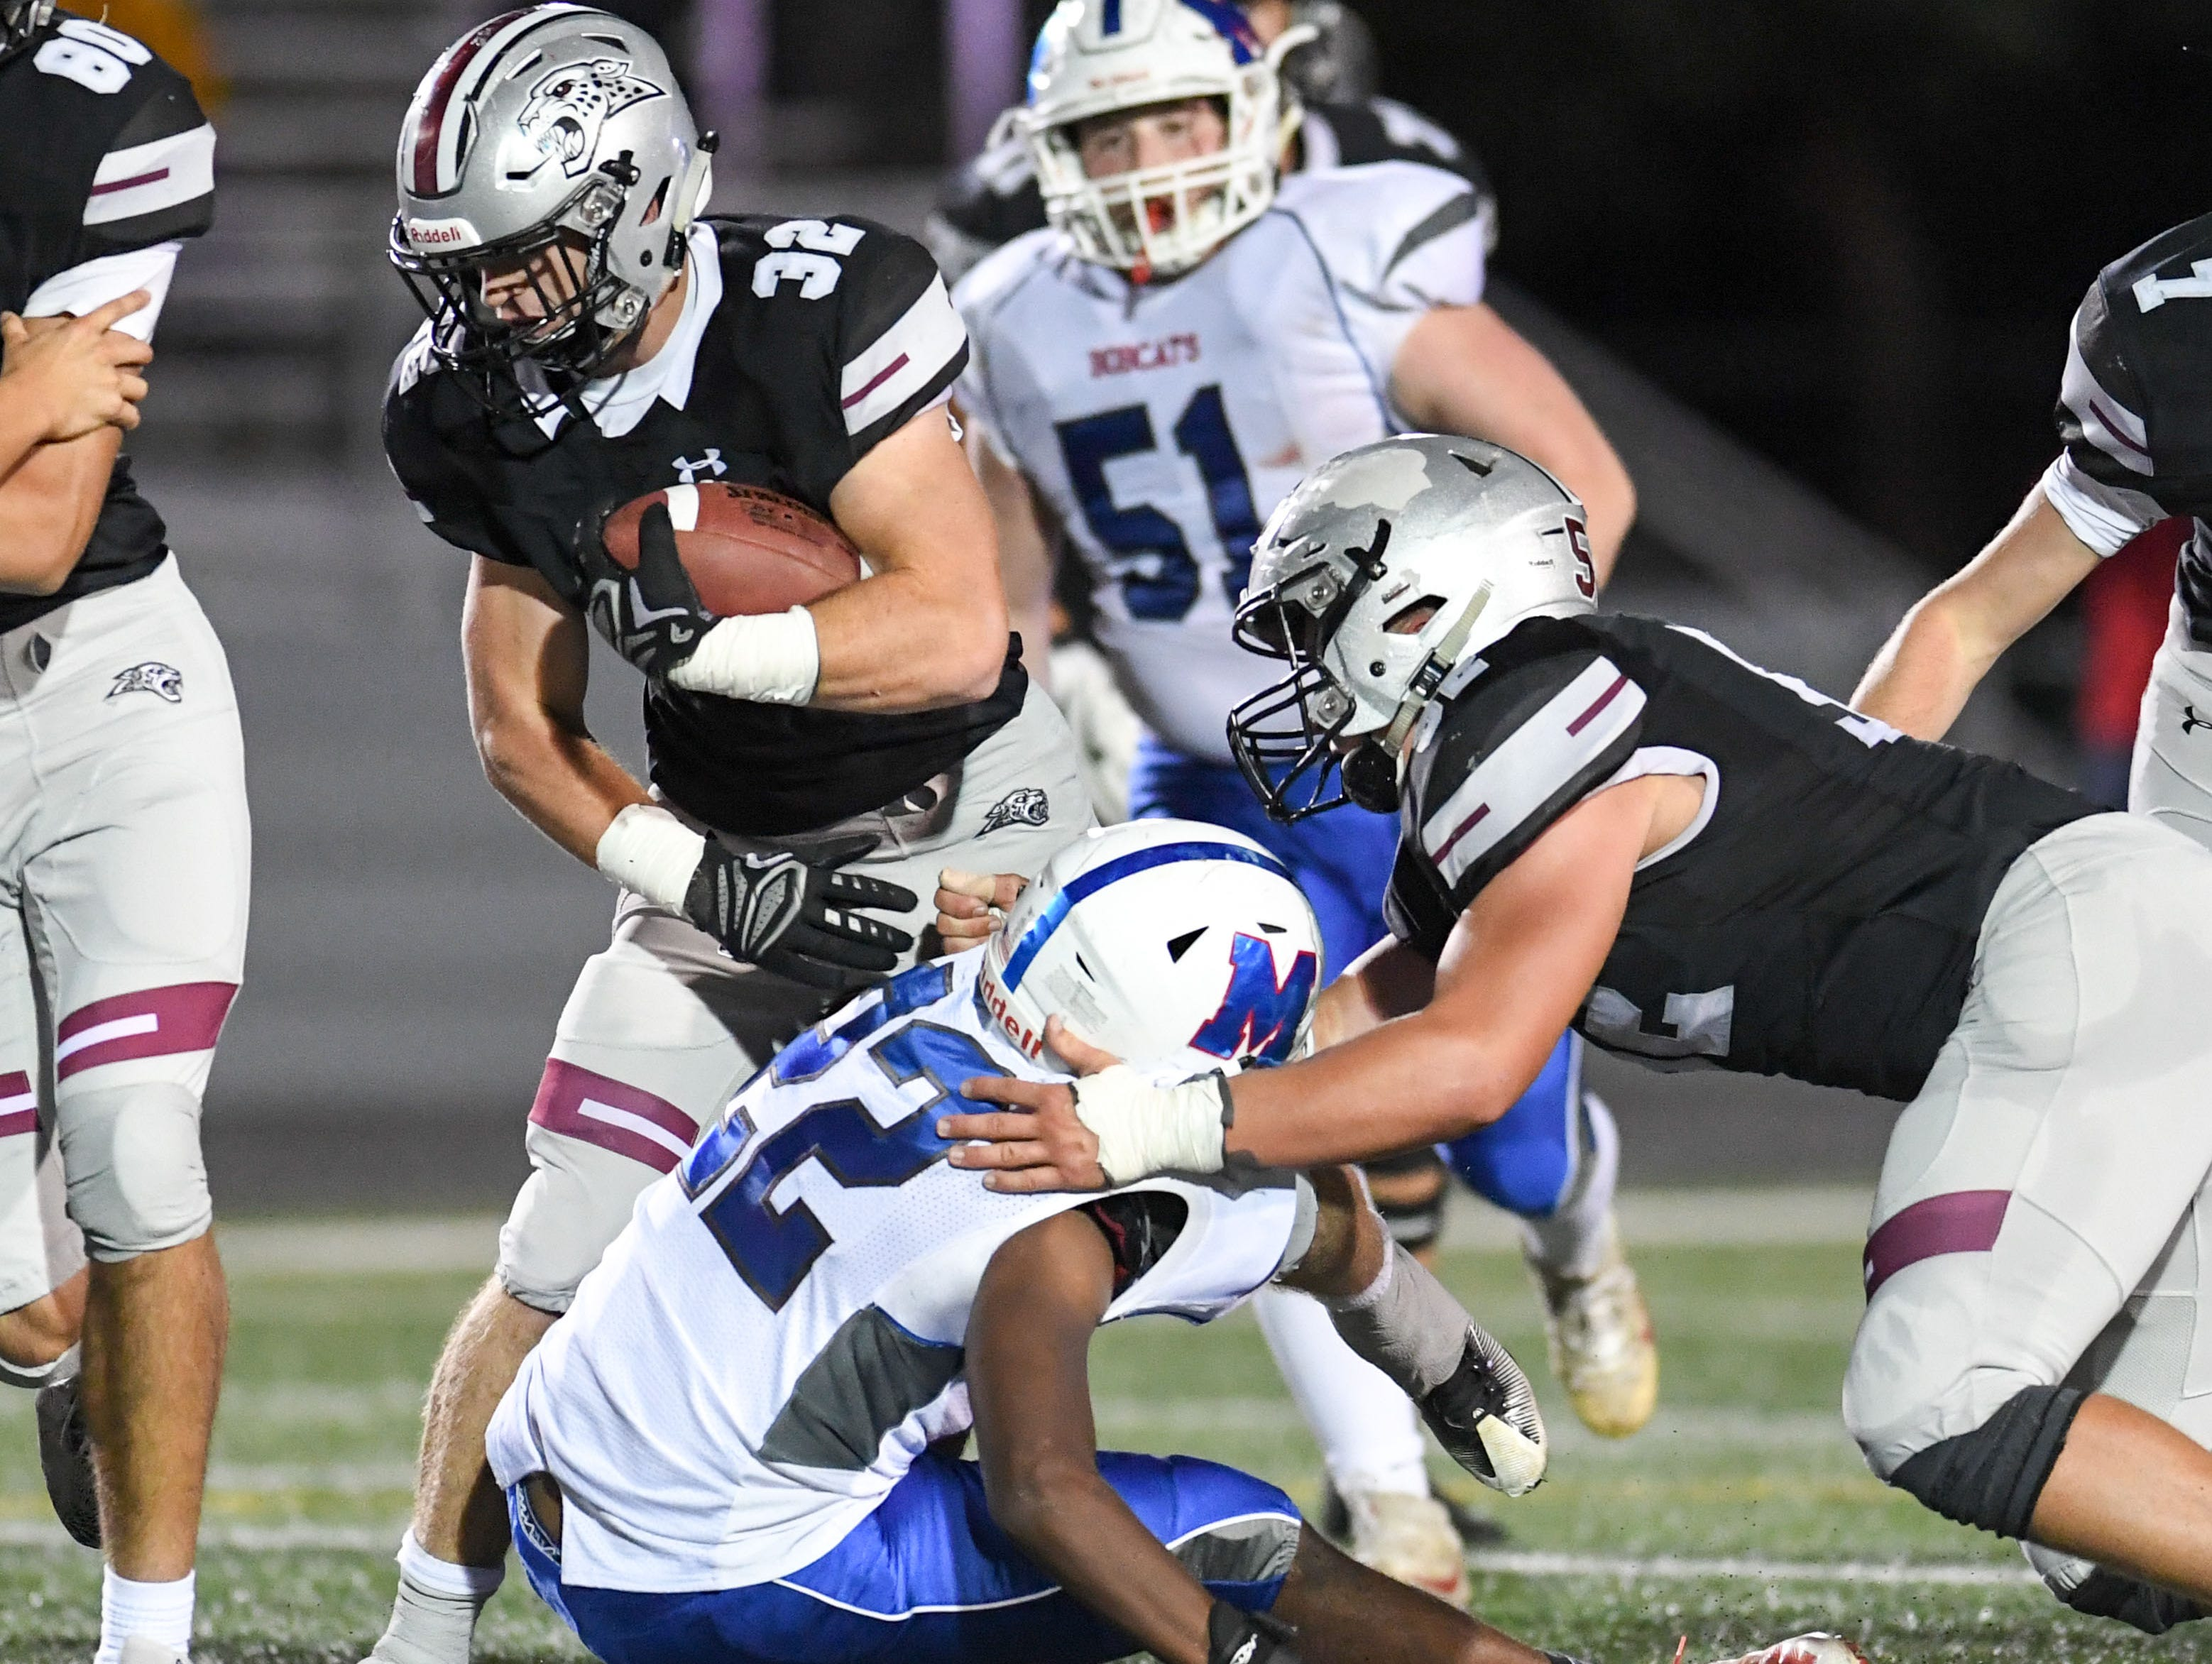 Ankeny Centennial's Gabe Godwin (32)  fights through Marshalltown defenders on Friday, Sept. 21, 2018 during a football game between the Ankeny Centennial Jaguars and the Marshalltown Bobcats at Northview Middle School.